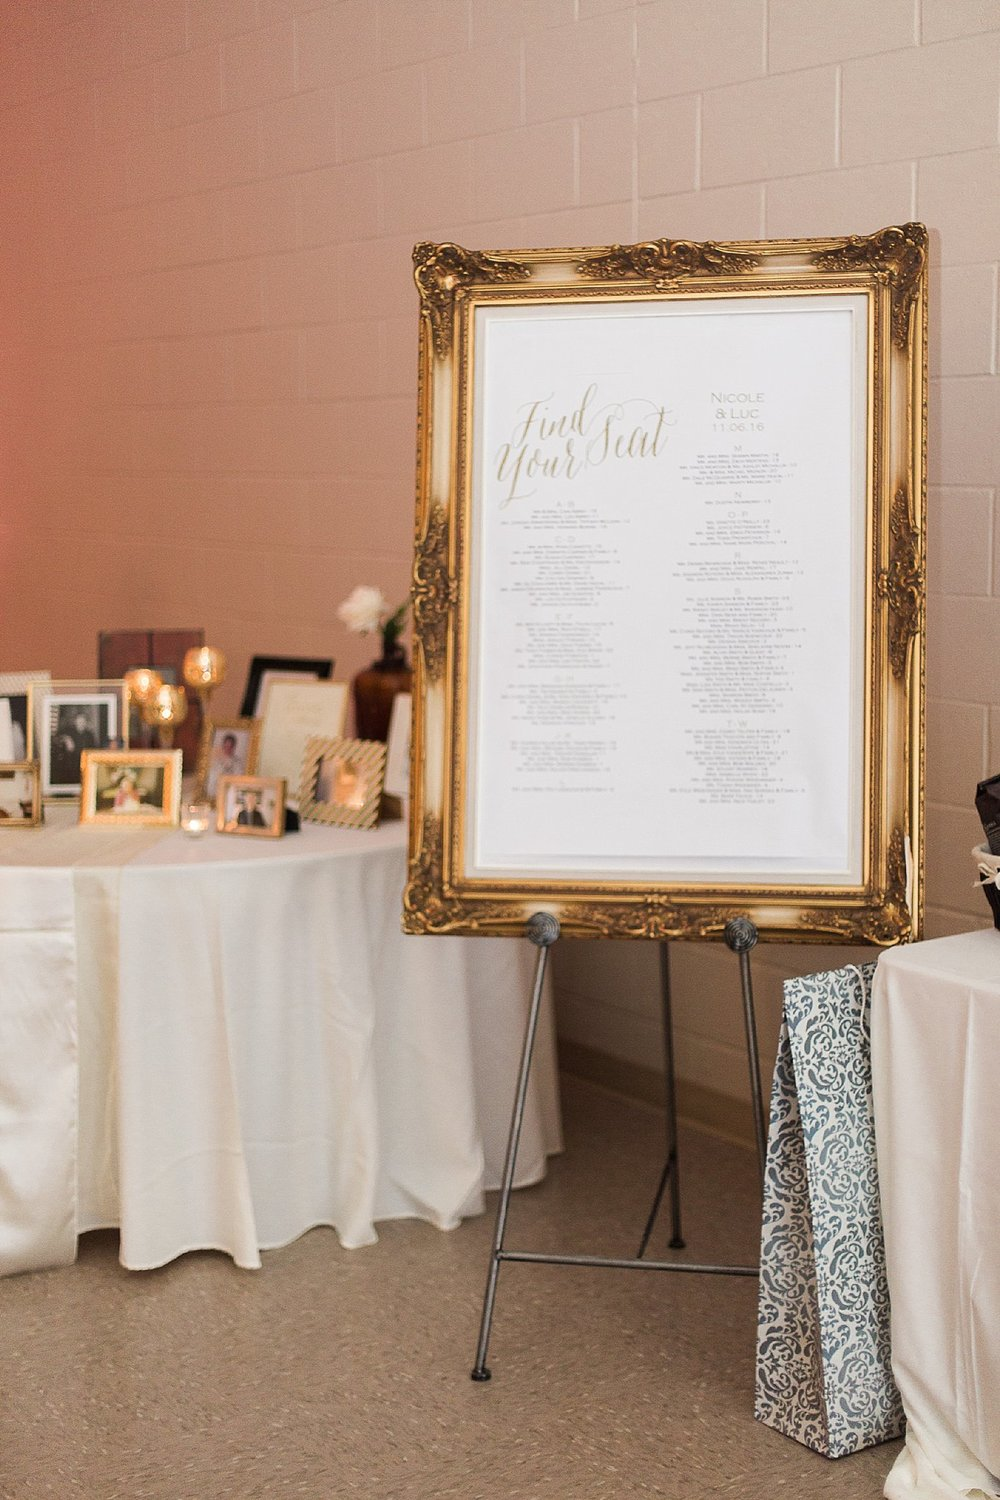 RCMP Wedding - Winnipeg Wedding Photographer - Gold and blush reception details - Keila Marie Photography